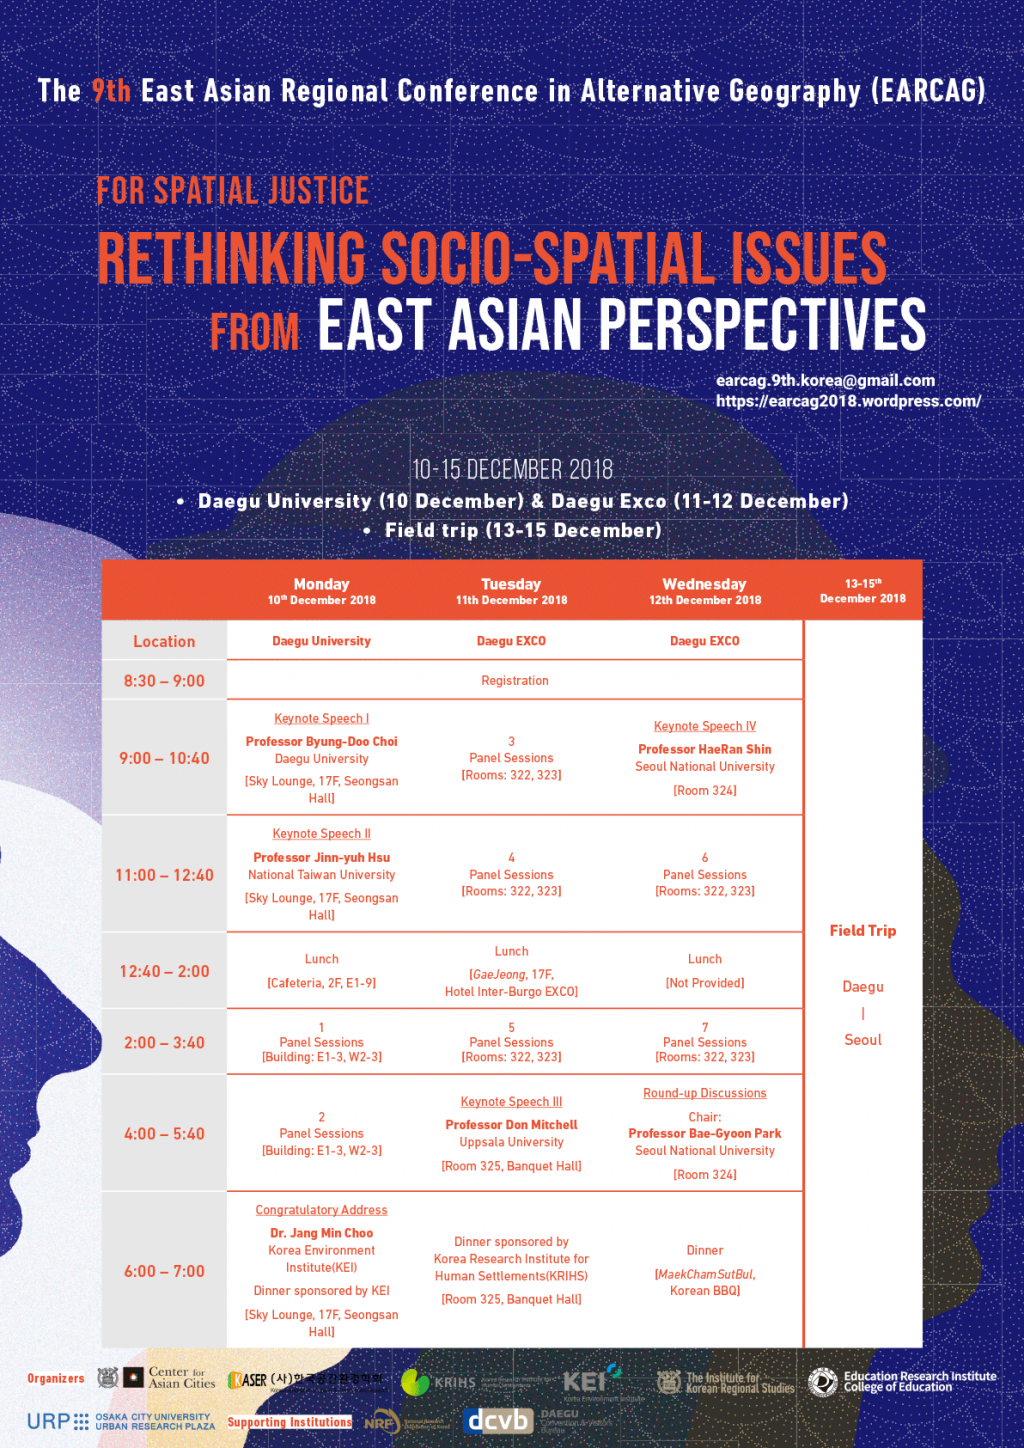 9th East Asian Regional Conference in Alternative Geography (EARCAG)